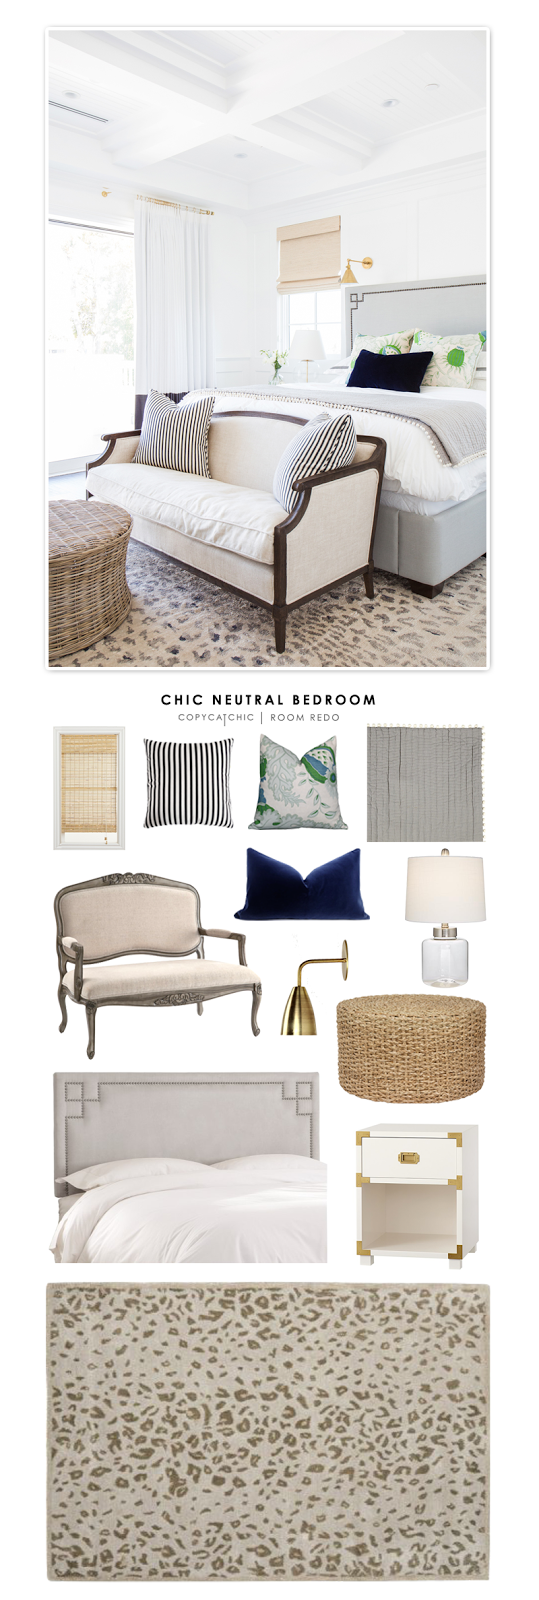 copy cat chic chic neutral bedroom copy cat chic